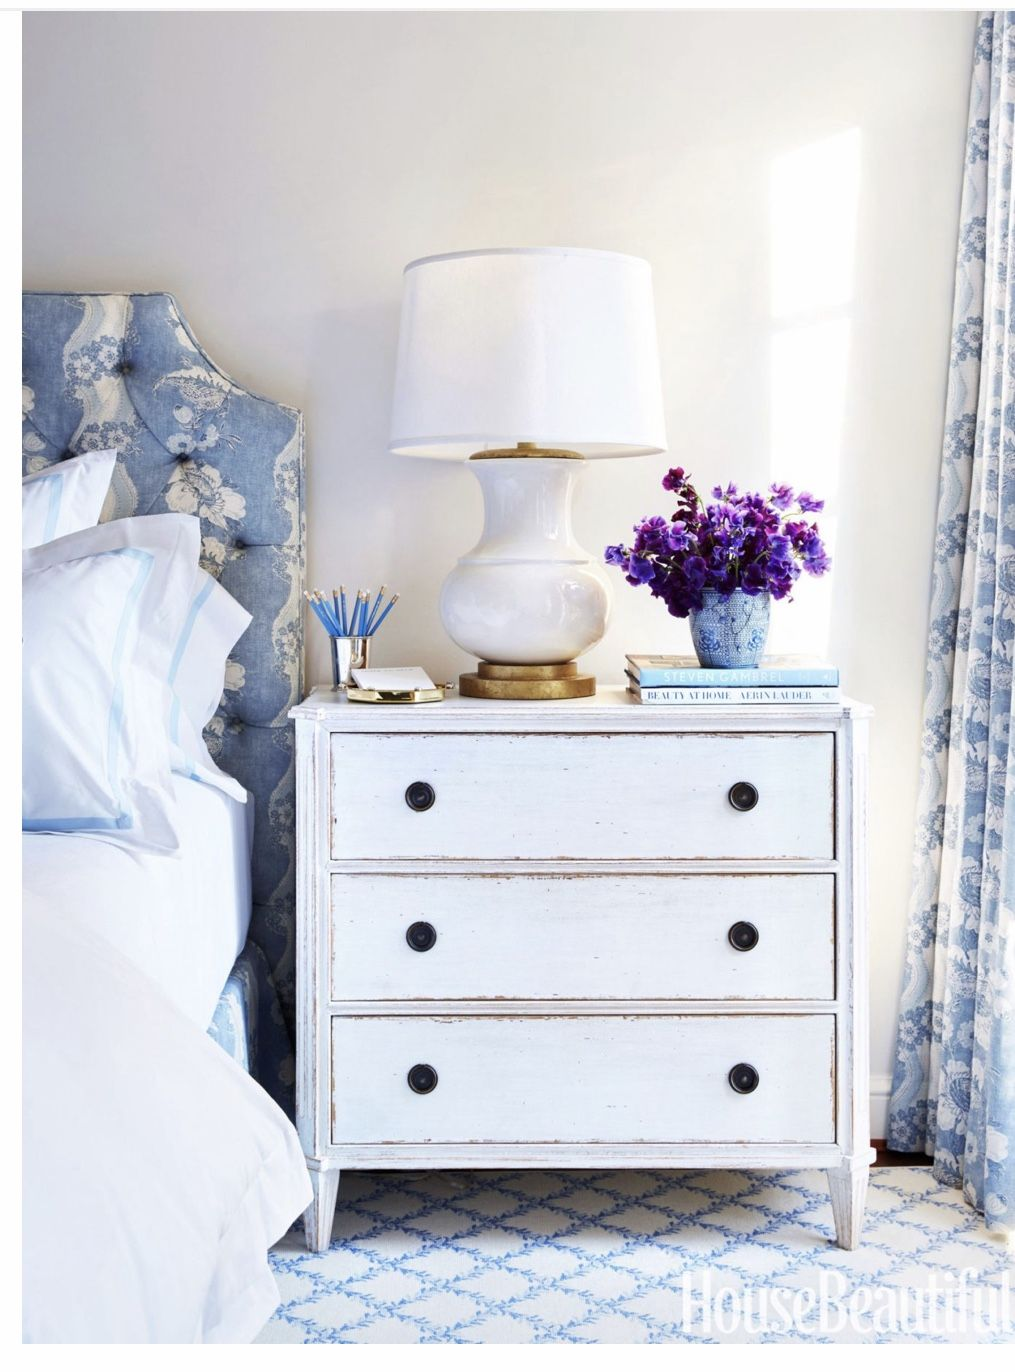 Pin by Judith Williams on A blue &white decor in 2020